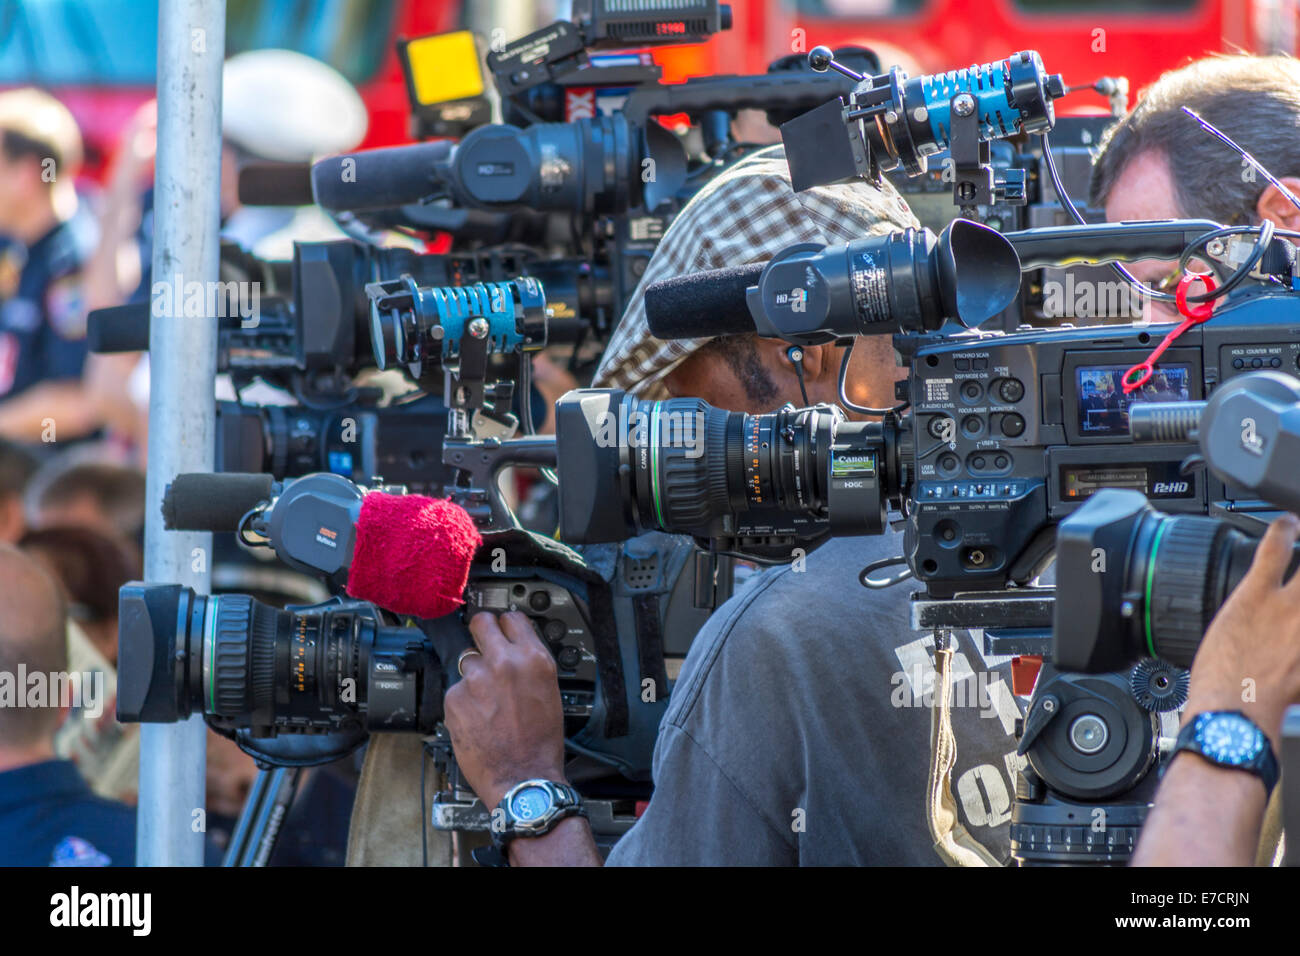 Media photographers covering an event - Stock Image